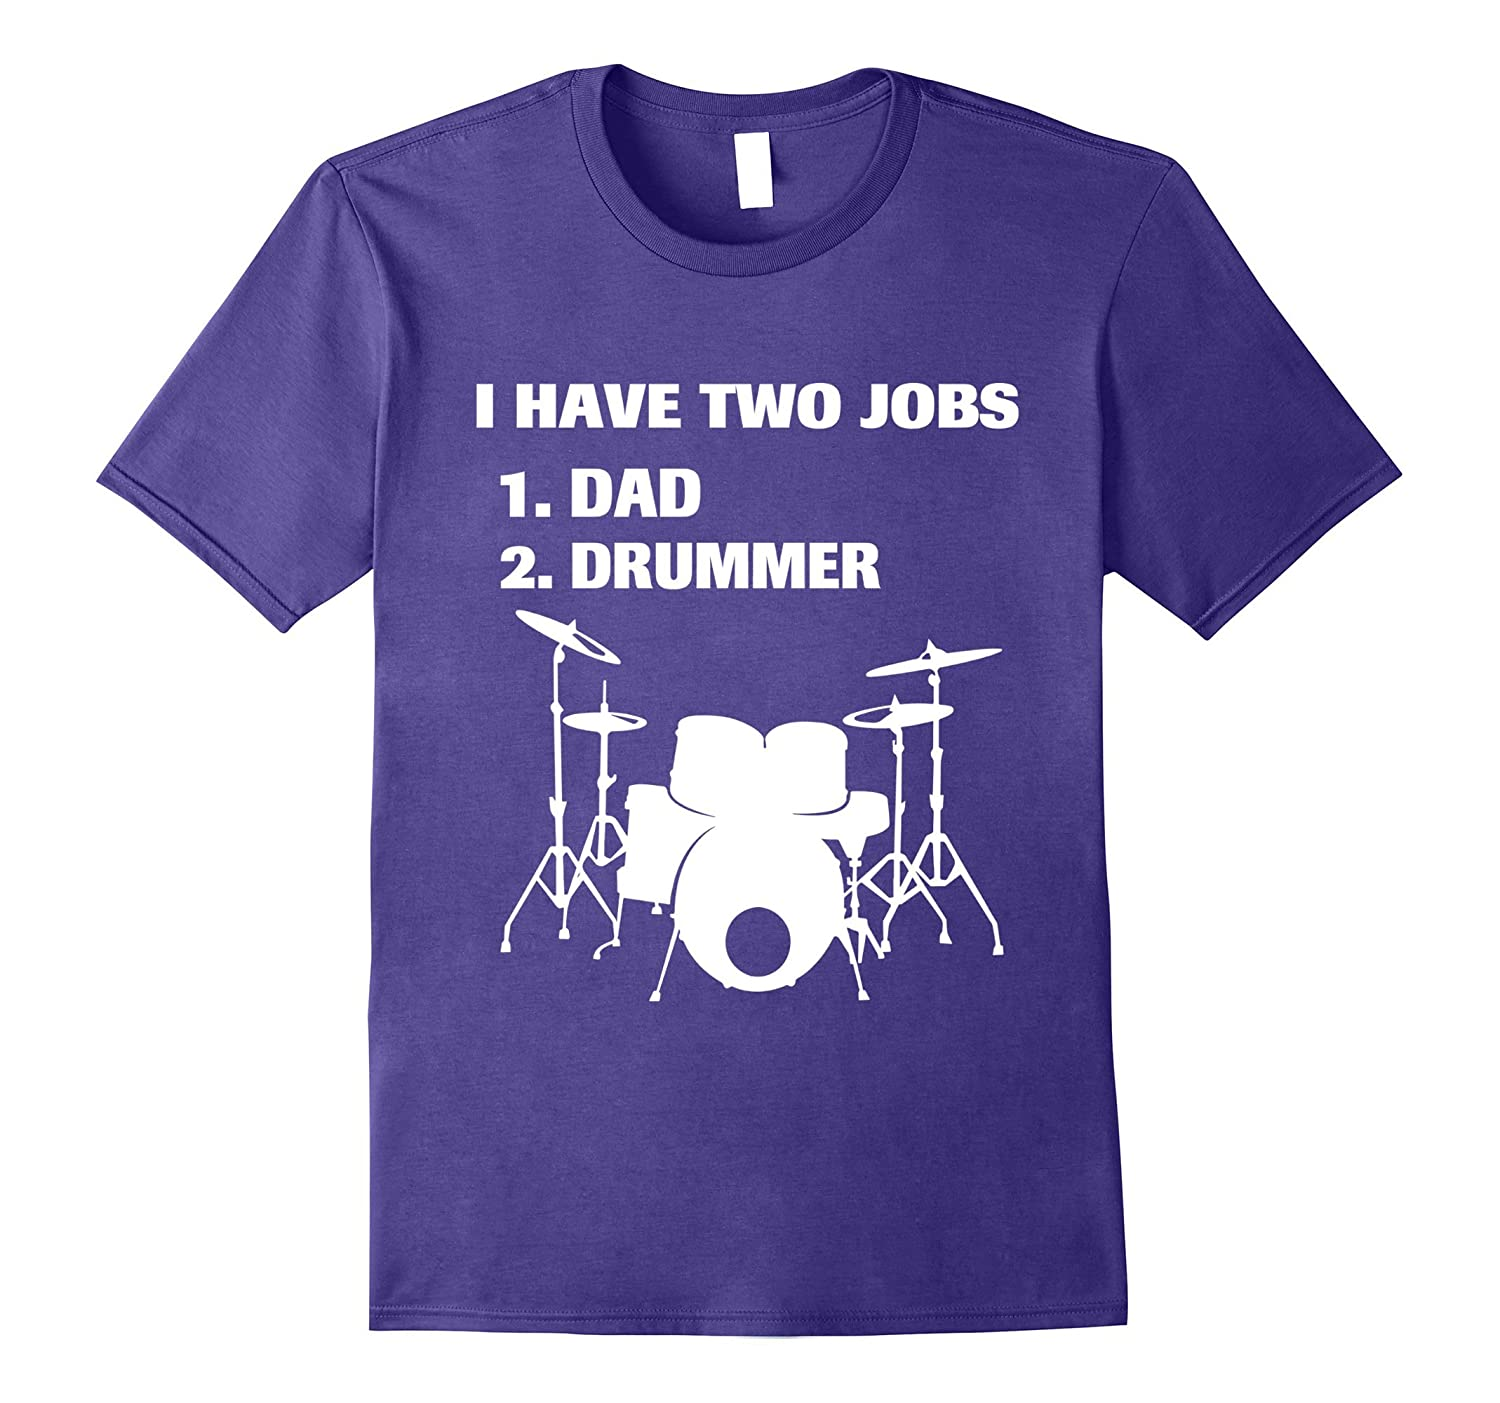 Have 2 Jobs Dad and Drummer Tshirt Funny Gift For MenDad-TJ